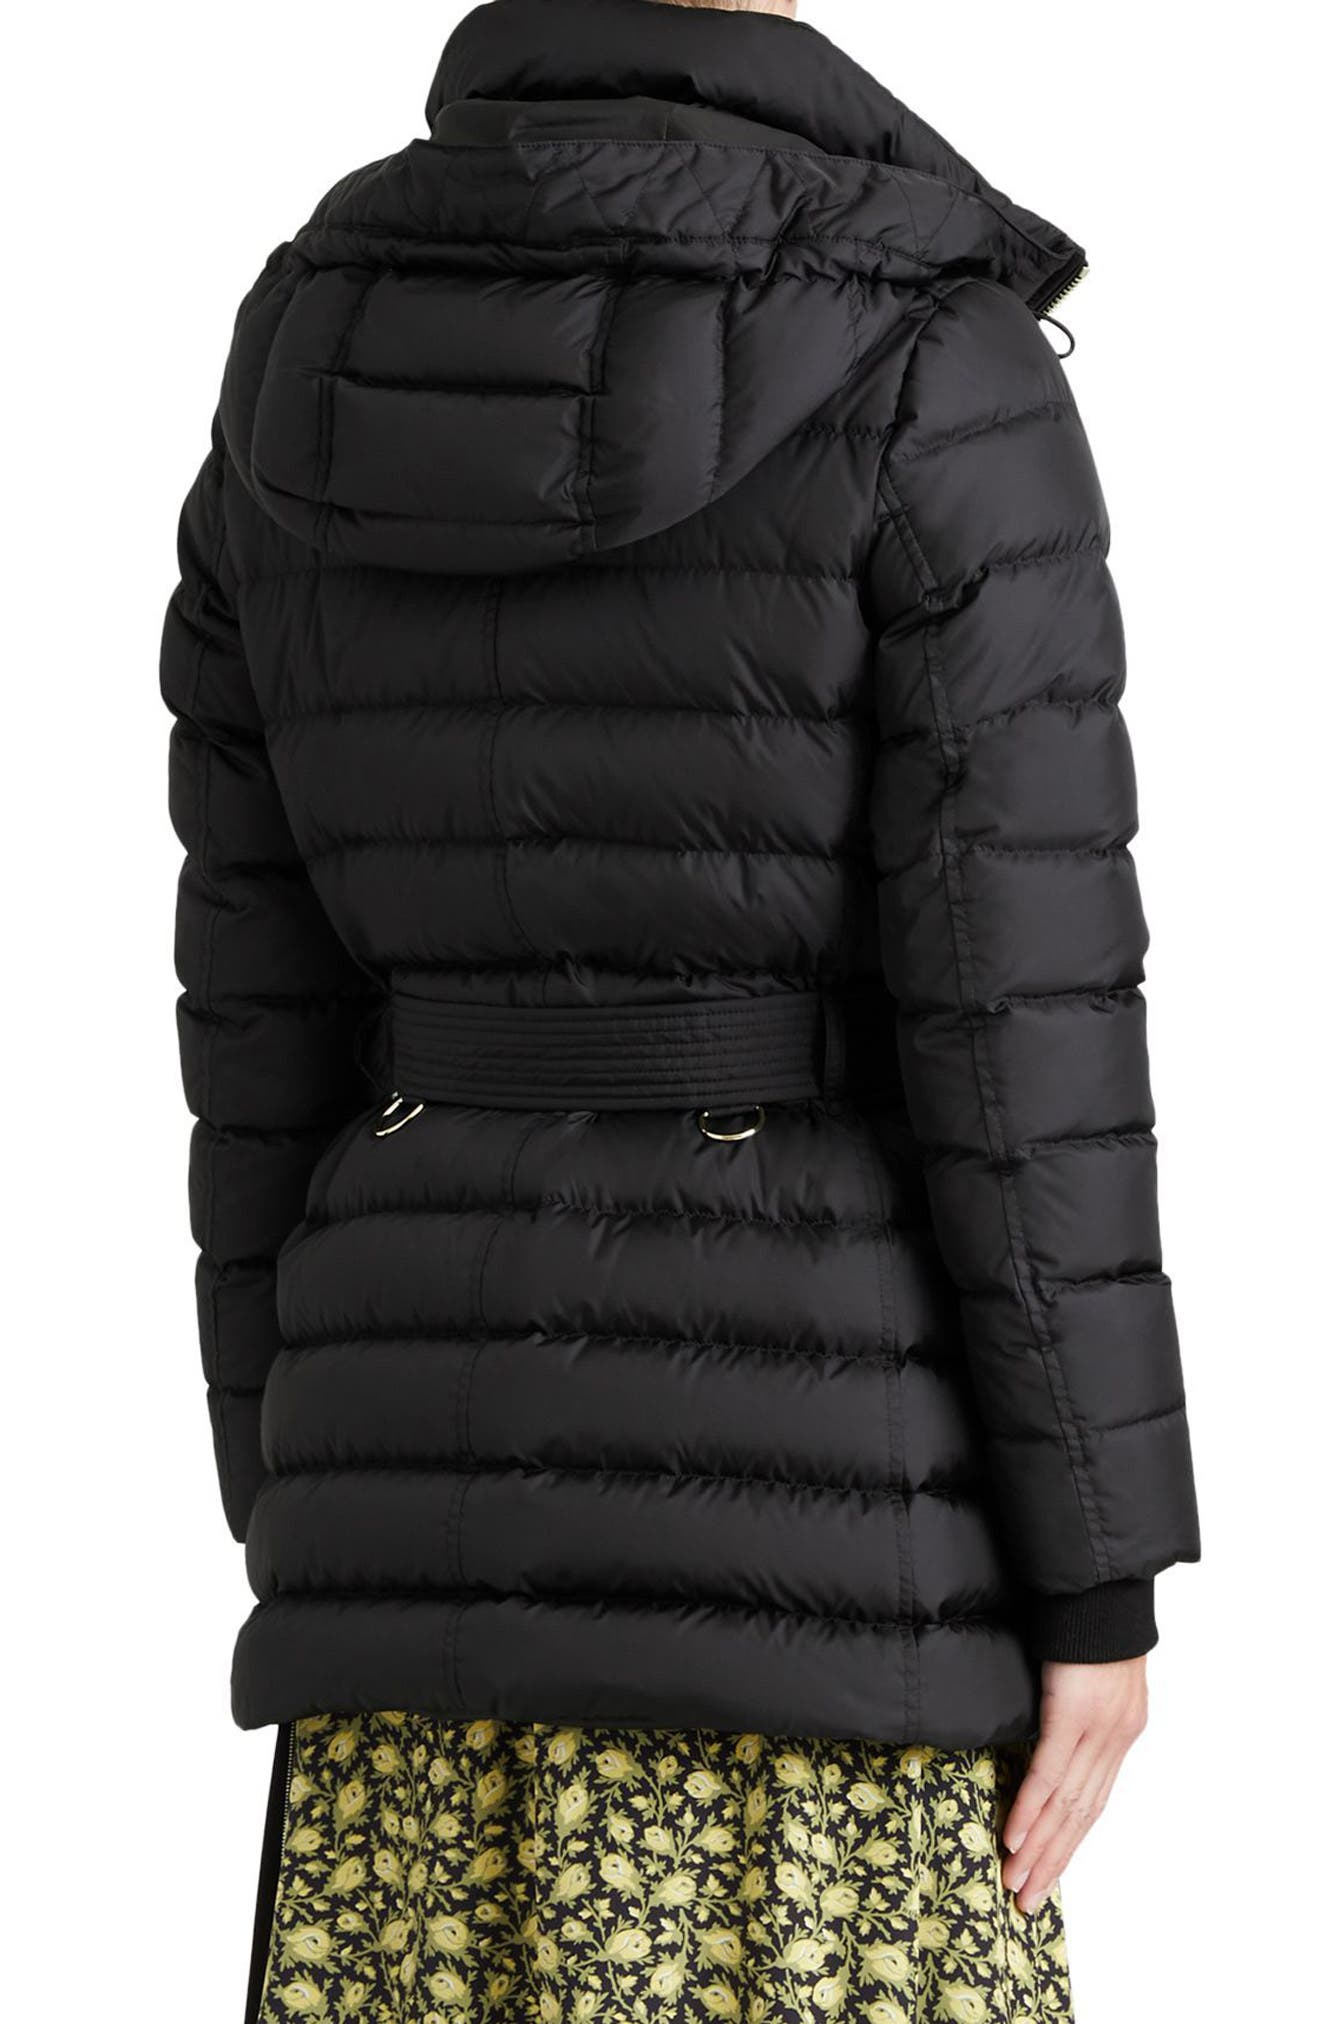 Limefield Hooded Puffer Coat,                             Alternate thumbnail 2, color,                             001